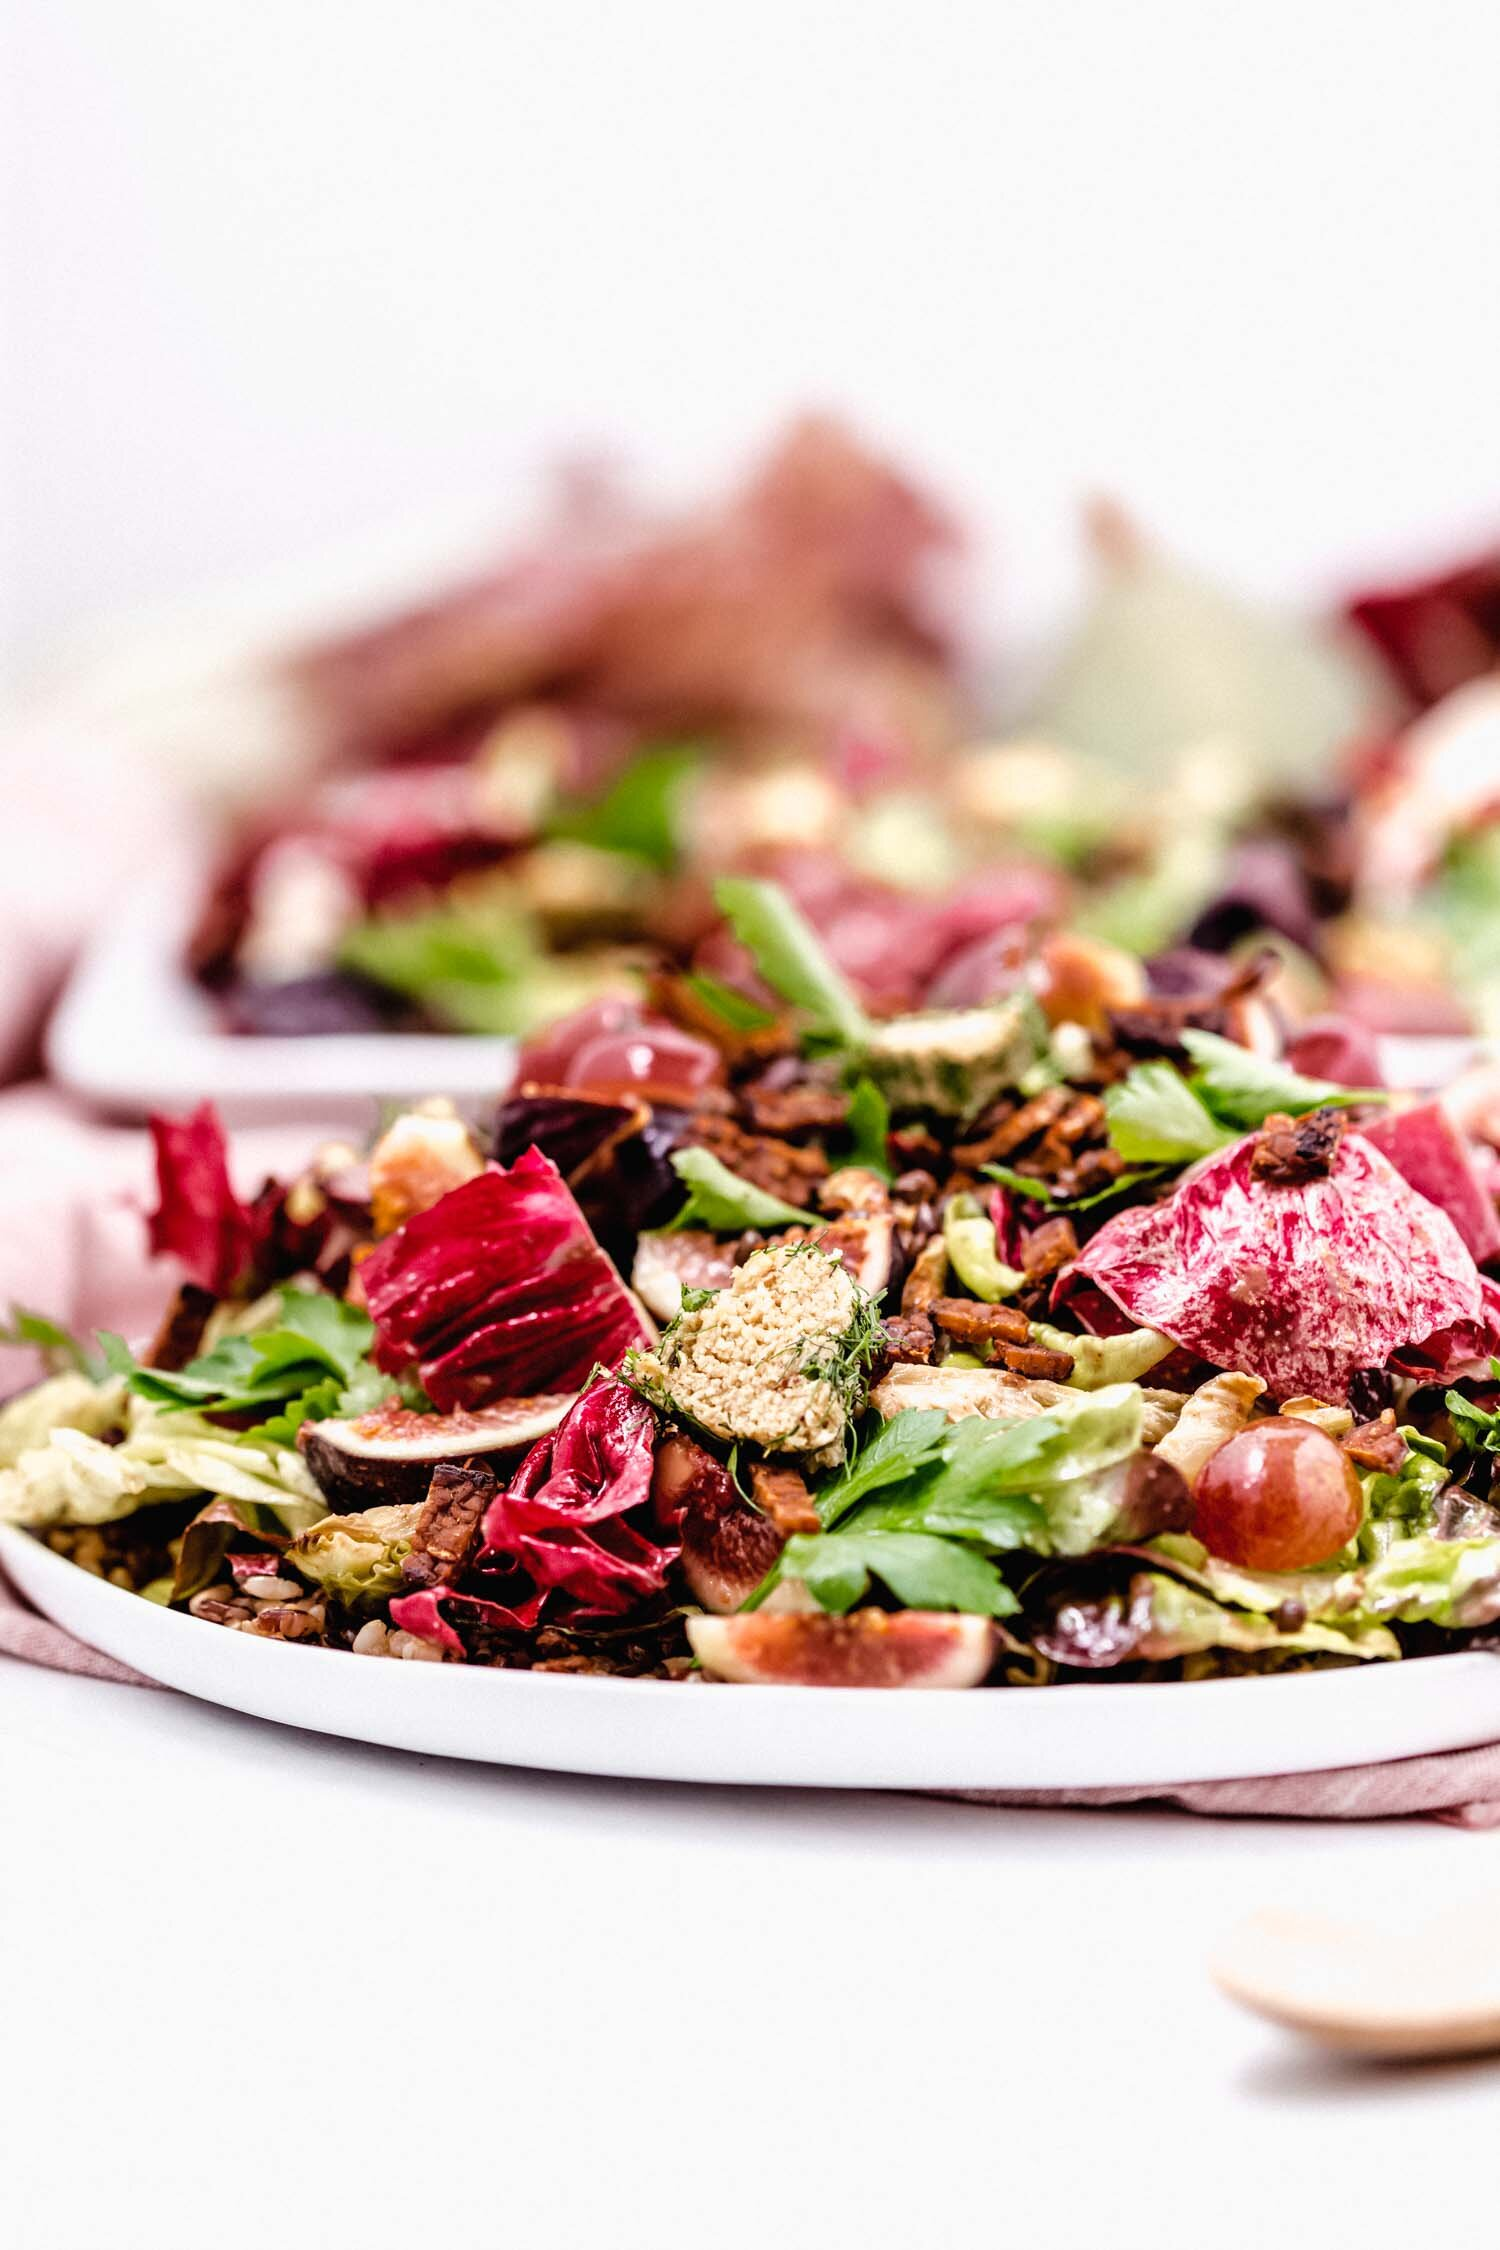 Radicchio Harvest Salad with Pecan Dressing (Vegan, GF) is a full holiday meal in itself, yet makes a crowd-pleasing plant-based addition to a holiday spread. #veganholiday #plantbasedrecipe #thanksgiving #christmas #holidaysalad #radicchio #vegancheese #lentils #wildrice #veganbacon #figrecipe #pecan #vegansalad #harvestsalad #thanksgivingsalad #colorfulsalad #glutenfreeholiday